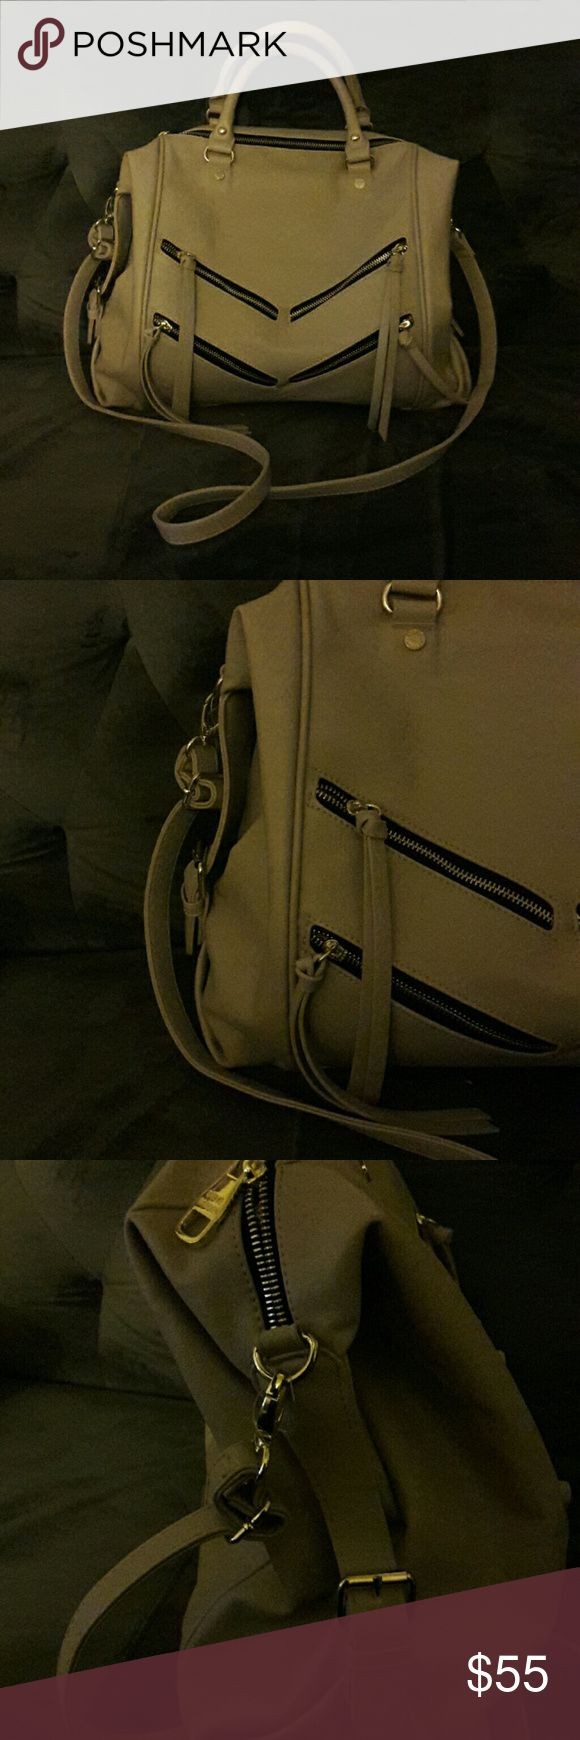 New Steve Madden Handbag New Steve Madden handbag. The bag is very large and can fit many things. It has the strap so you can use as a crossbody. The zippers on the exterior are extra compartments that allow you to store more things. Steve Madden Bags Satchels